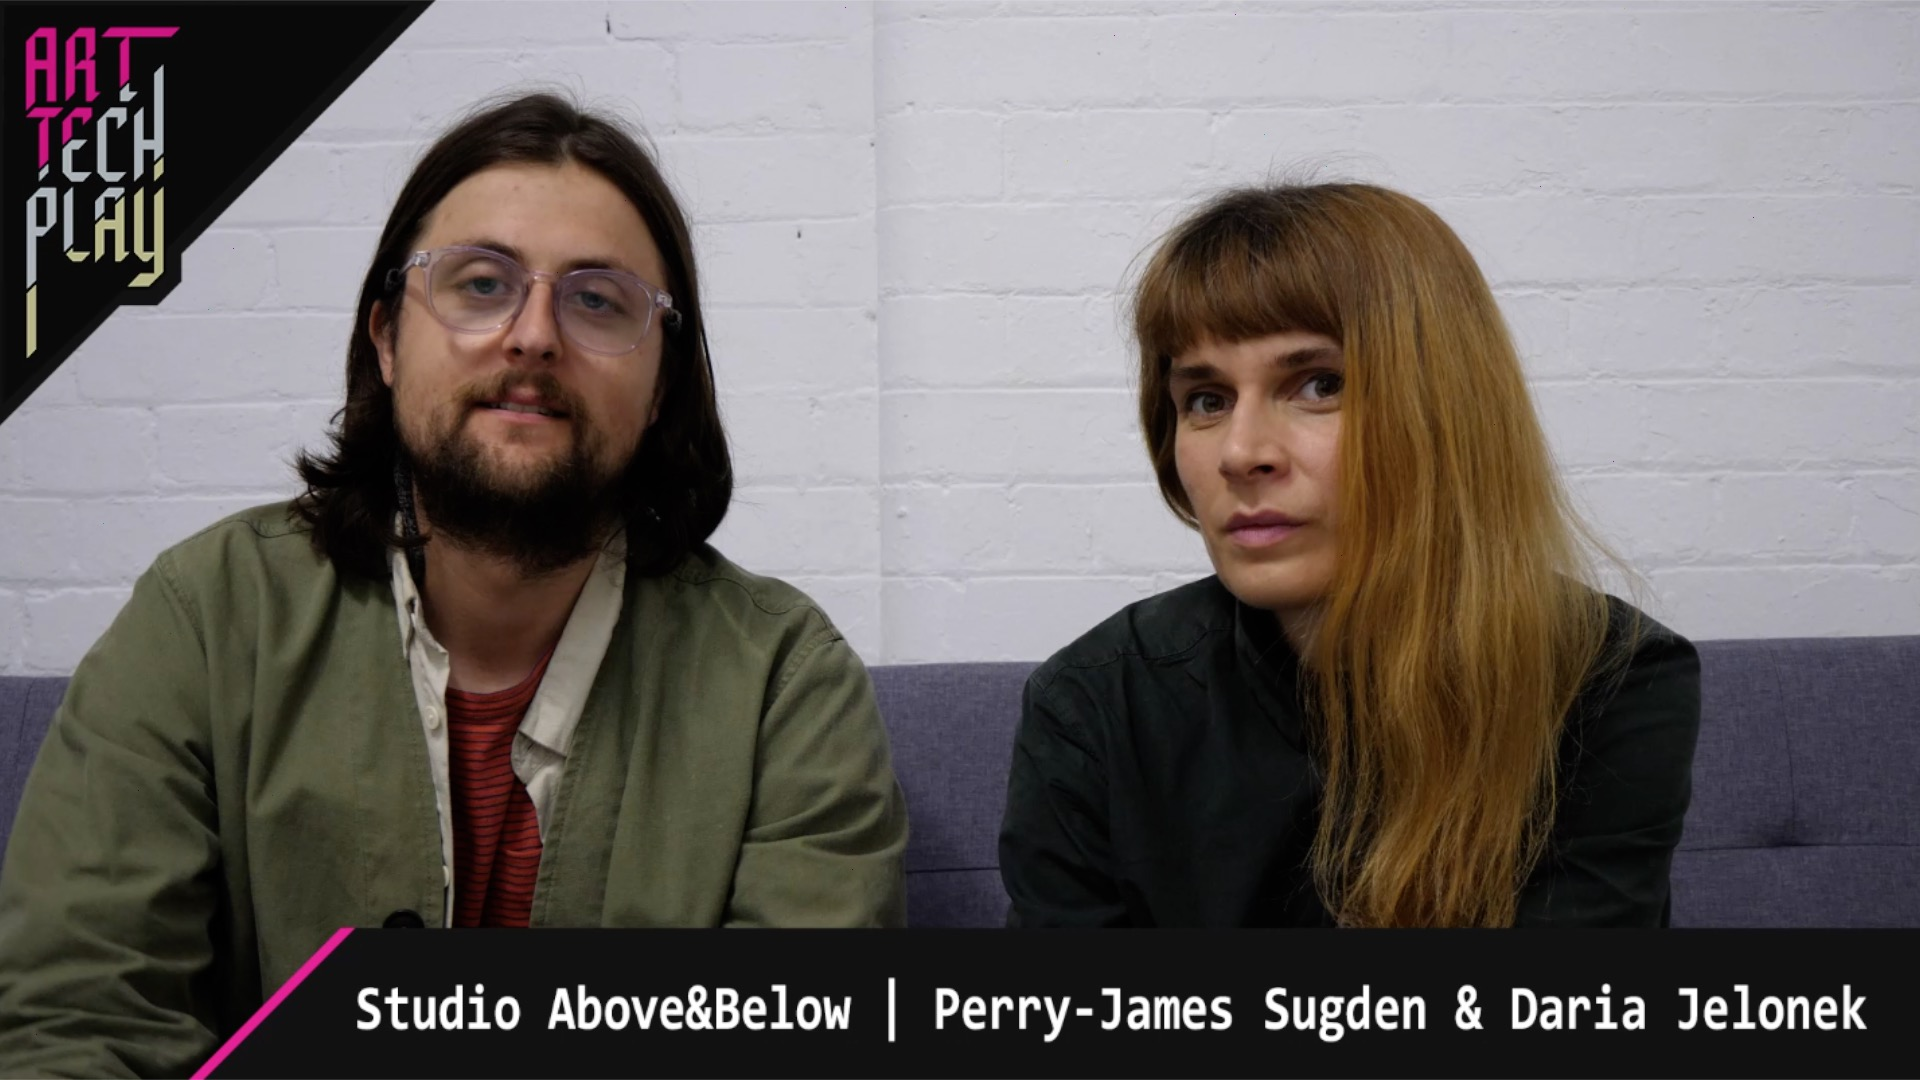 Studio Above&Below on augmented & mixed reality